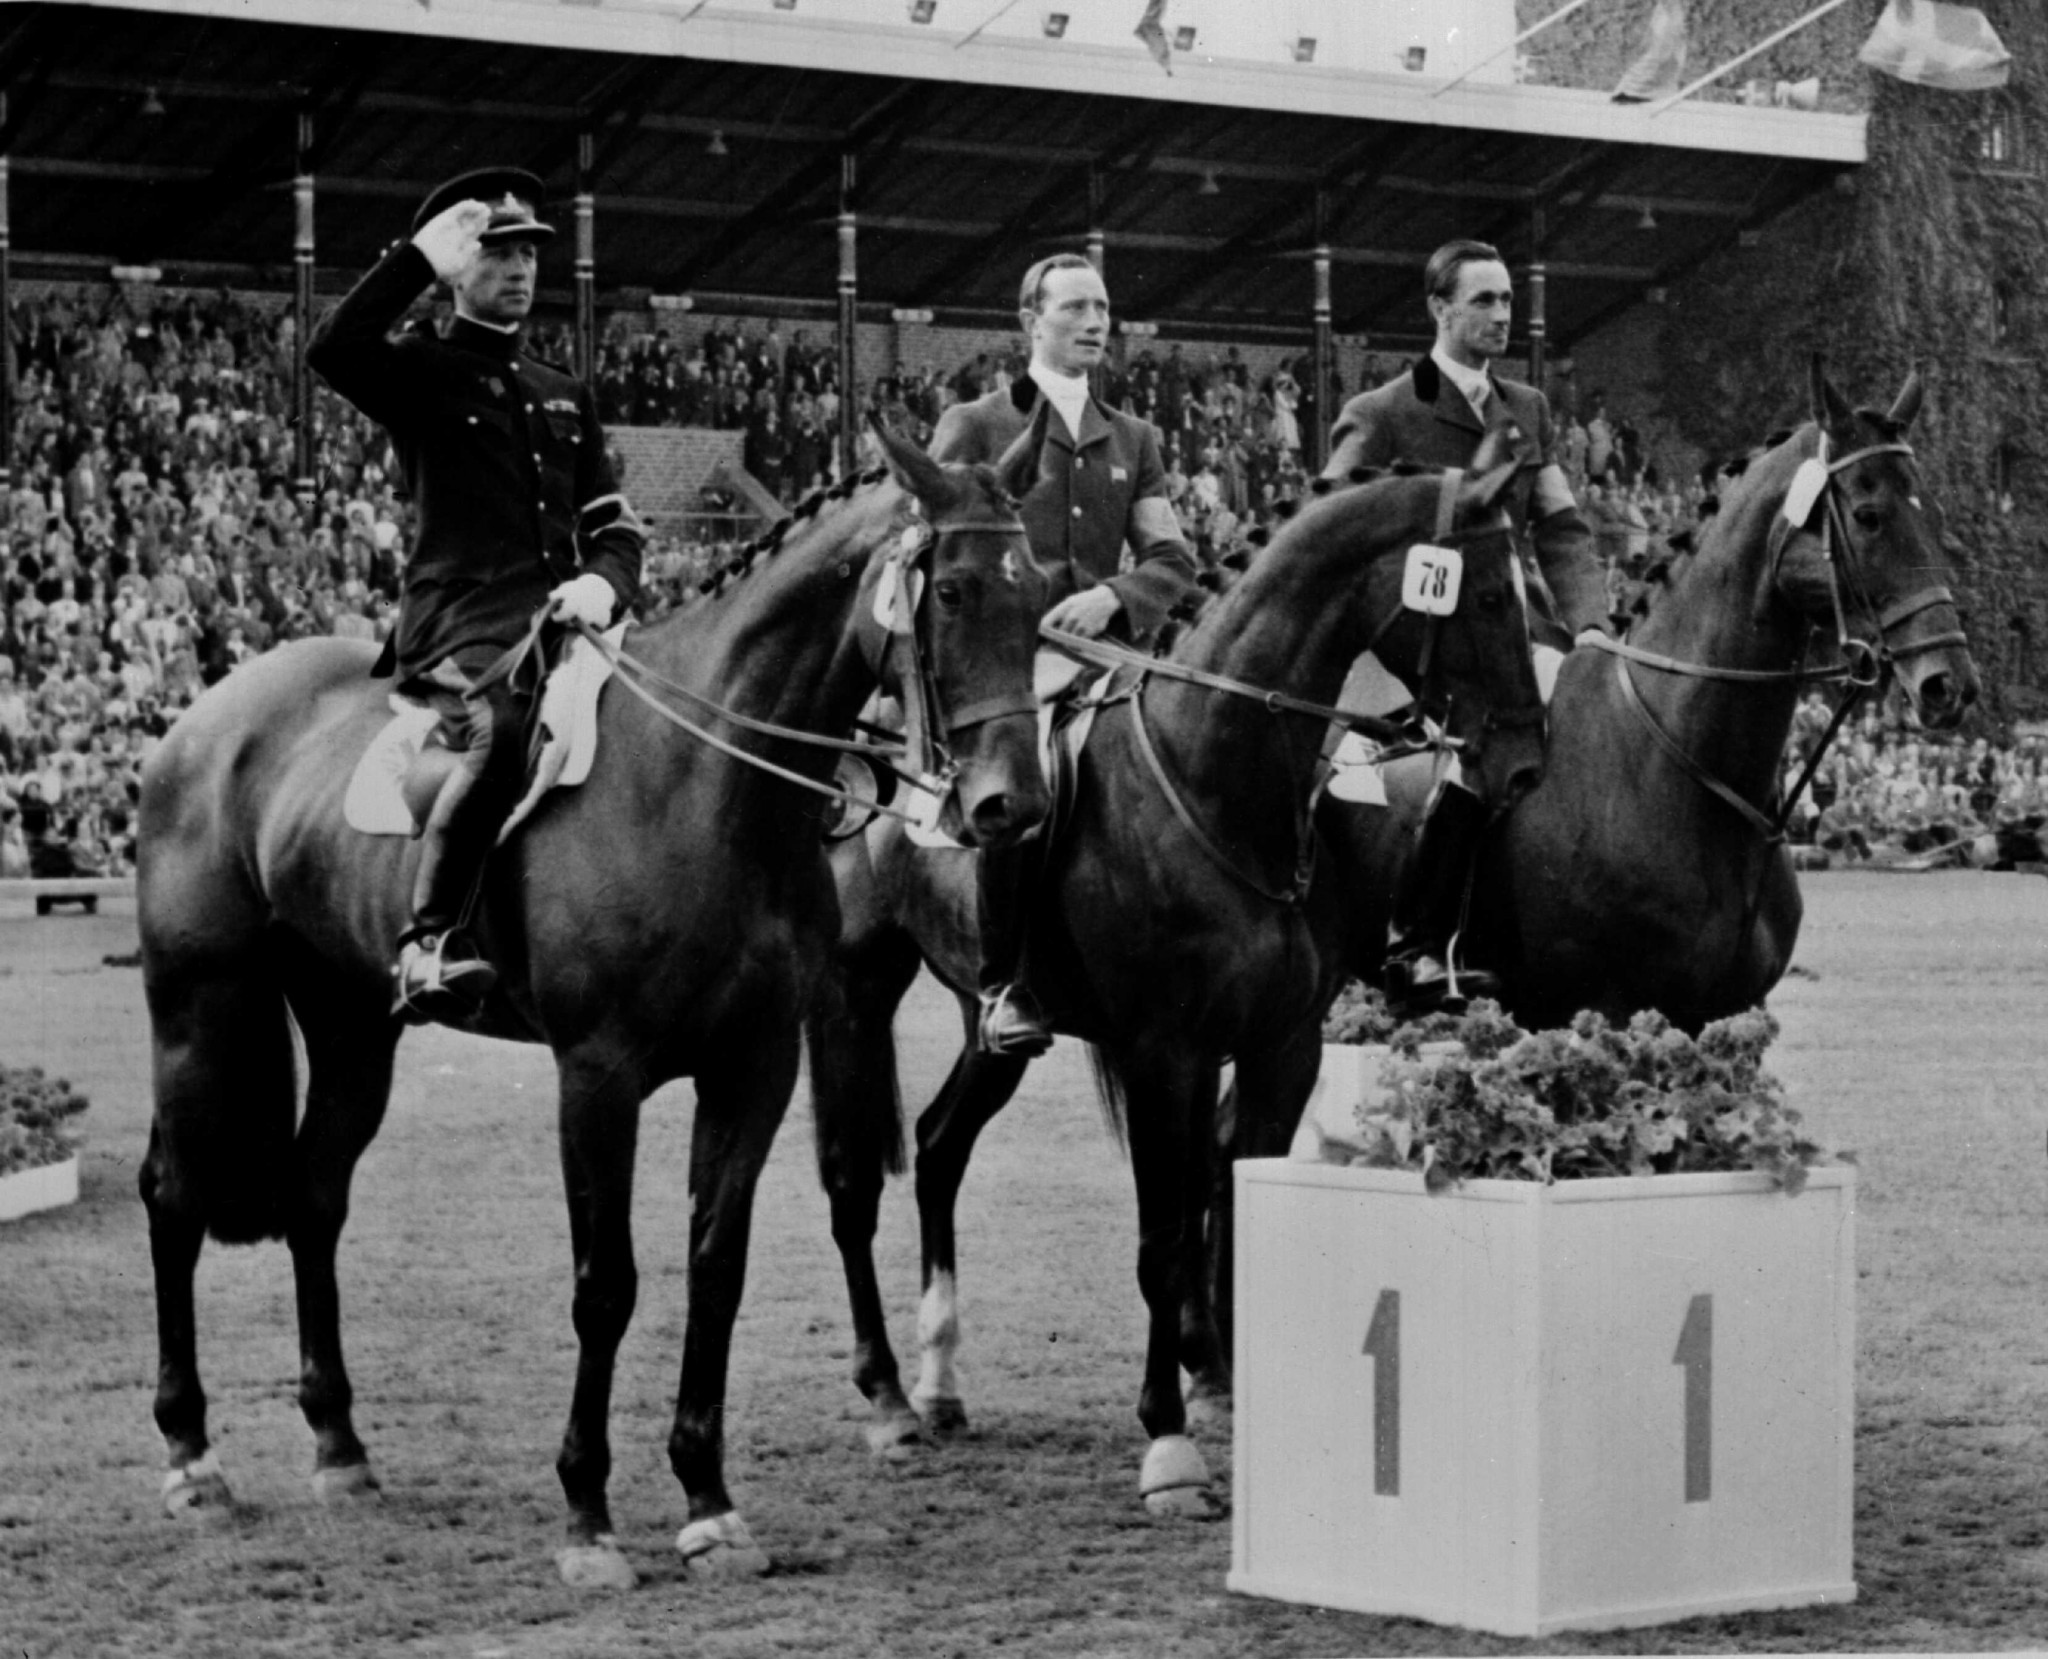 The British team - Frank Weldon, left, Bertie Hill, centre, and Laurence Rook, right - after winning the eventing team gold ©Getty Images